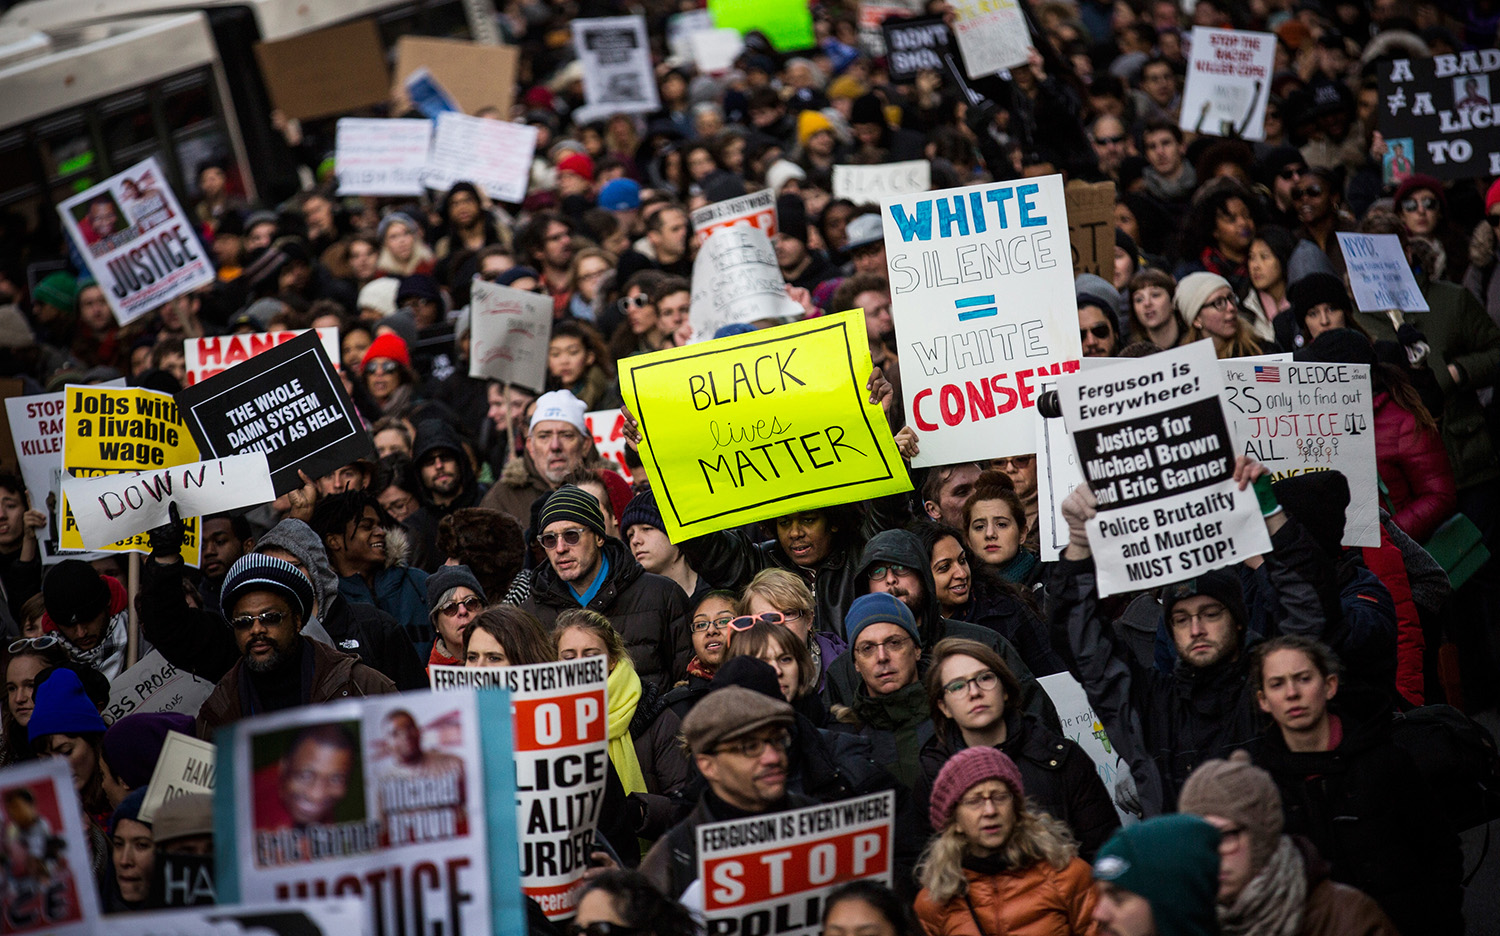 People march in the National March Against Police Violence, which was organized by National Action Network, through the streets of Manhattan on December 13, 2014 in New York City.